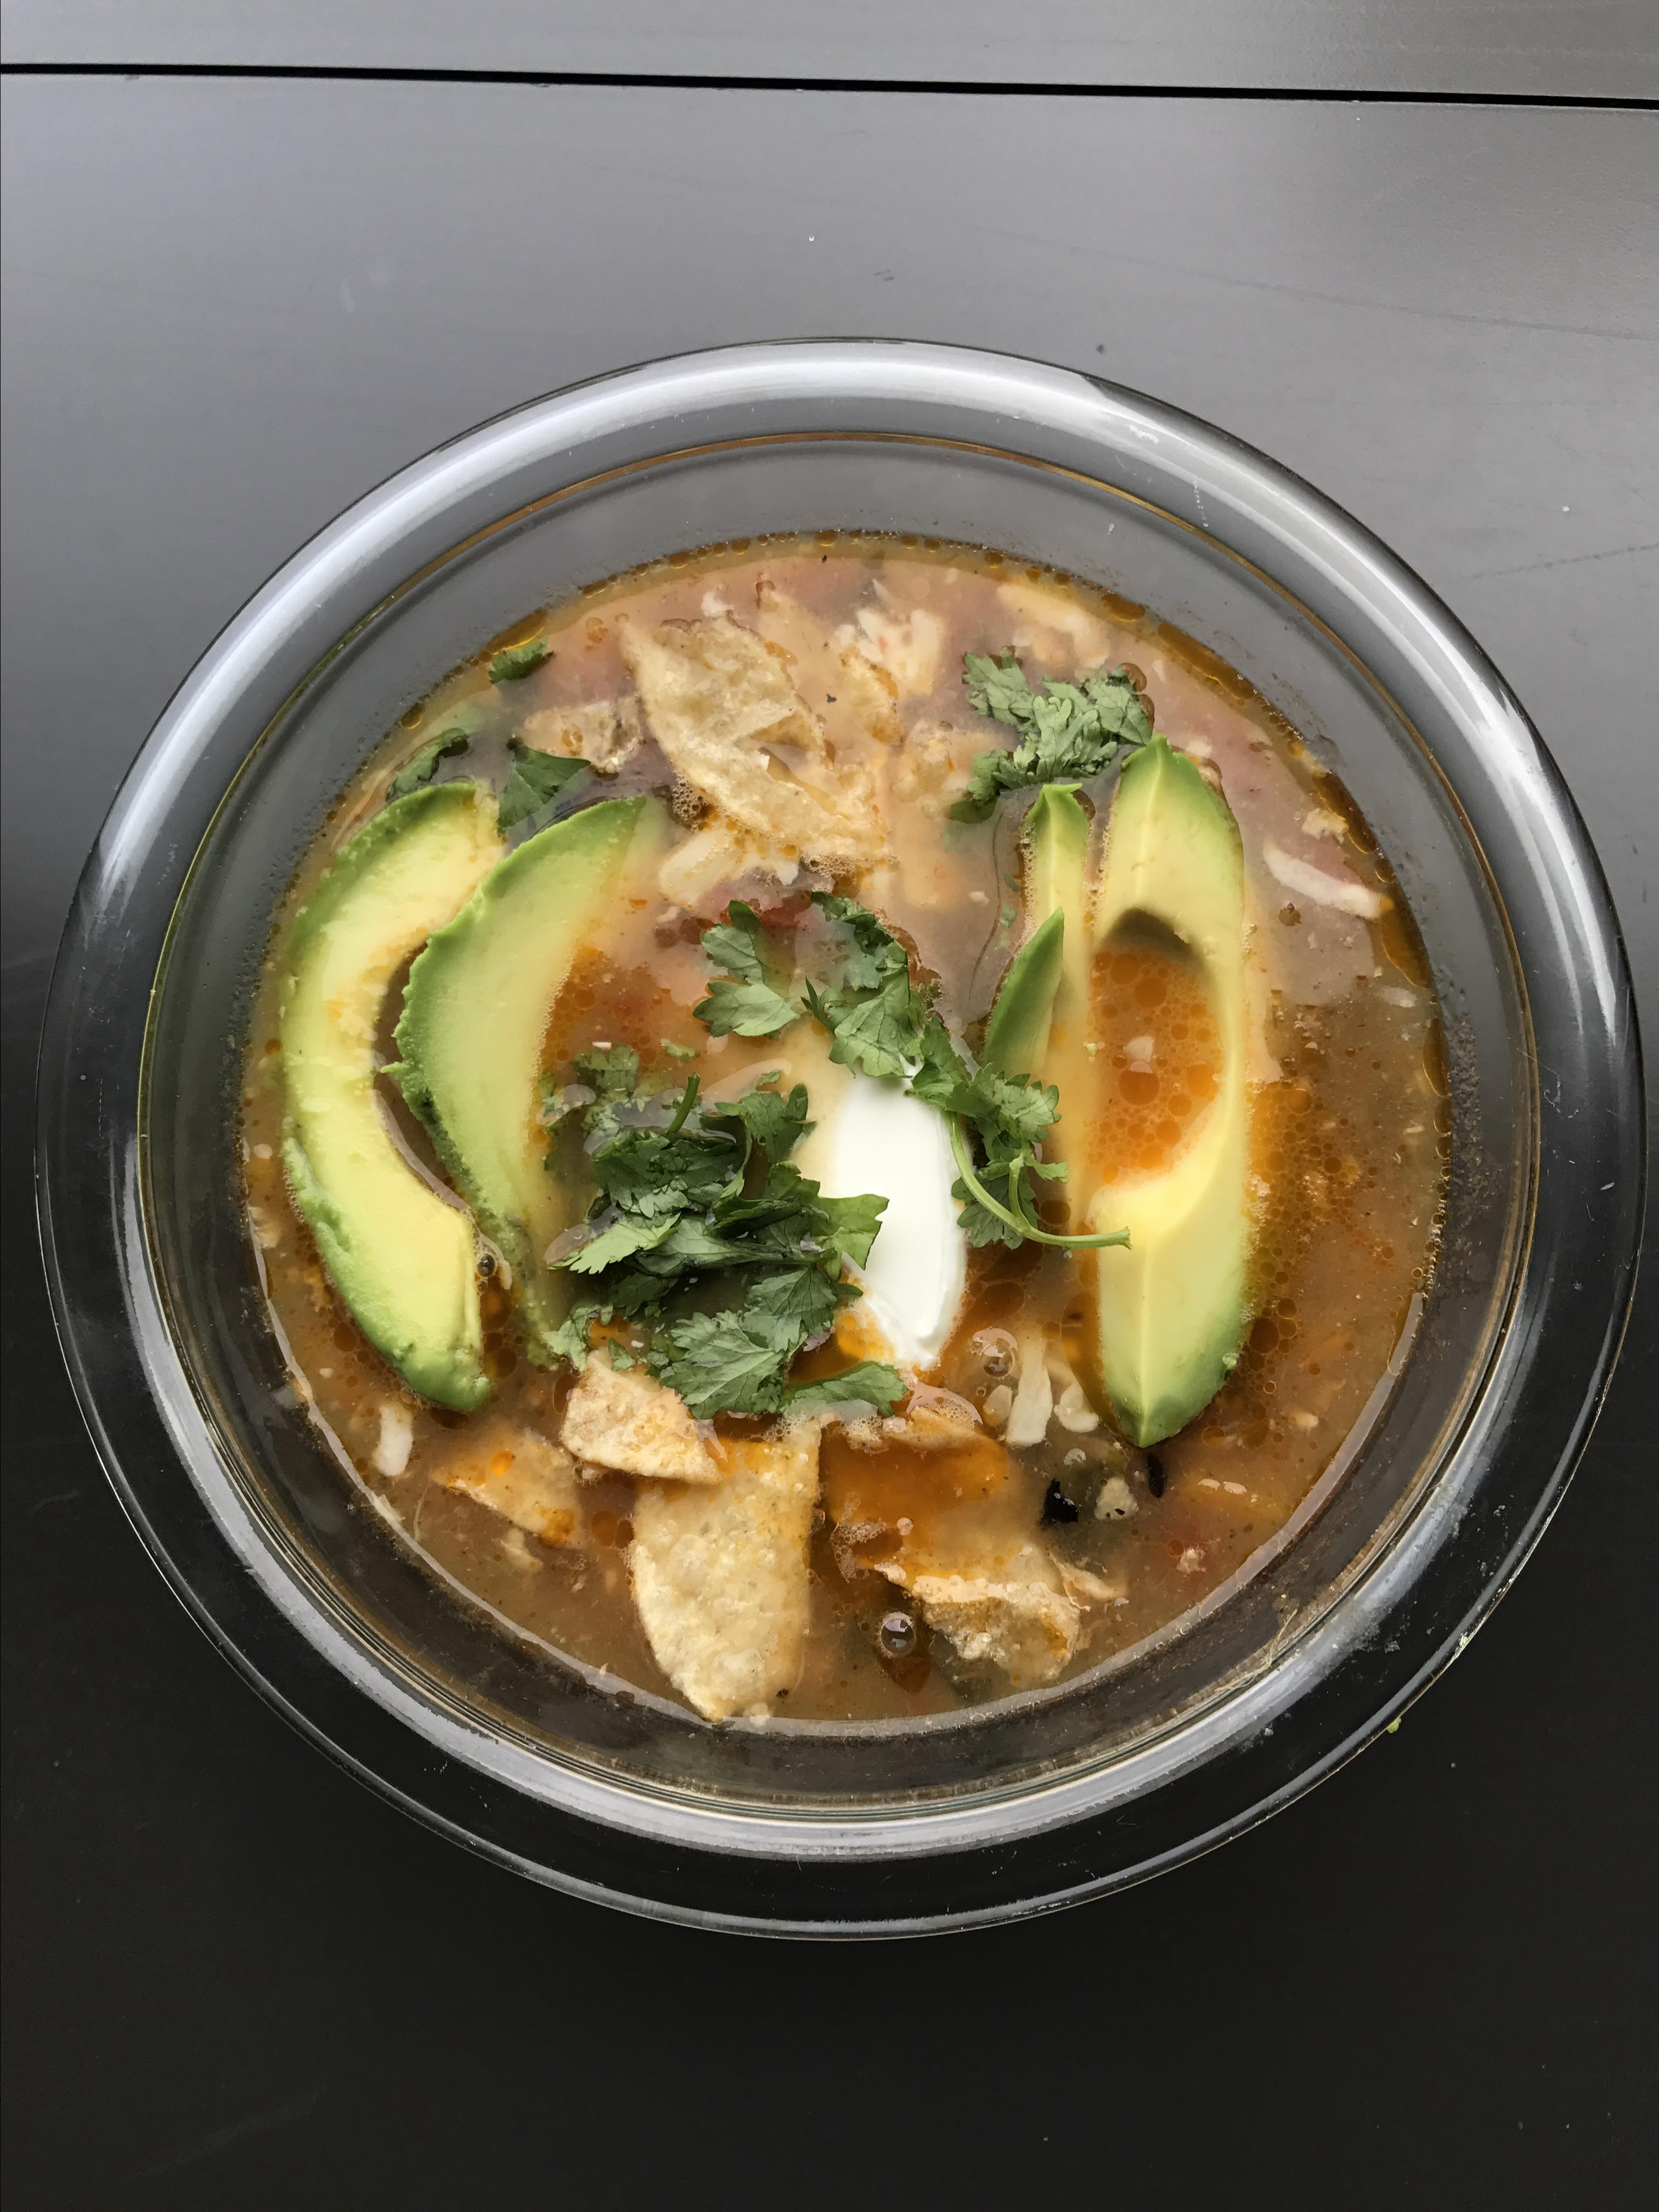 """You'll make this hearty version of chicken tortilla soup made in the Instant Pot®. """"Top soup with avocado, pepper Jack cheese, fresh cilantro, sour cream, crumbled tortilla chips, and hot sauce,"""" says voraciousgirl. """"This is great for freezing!"""""""